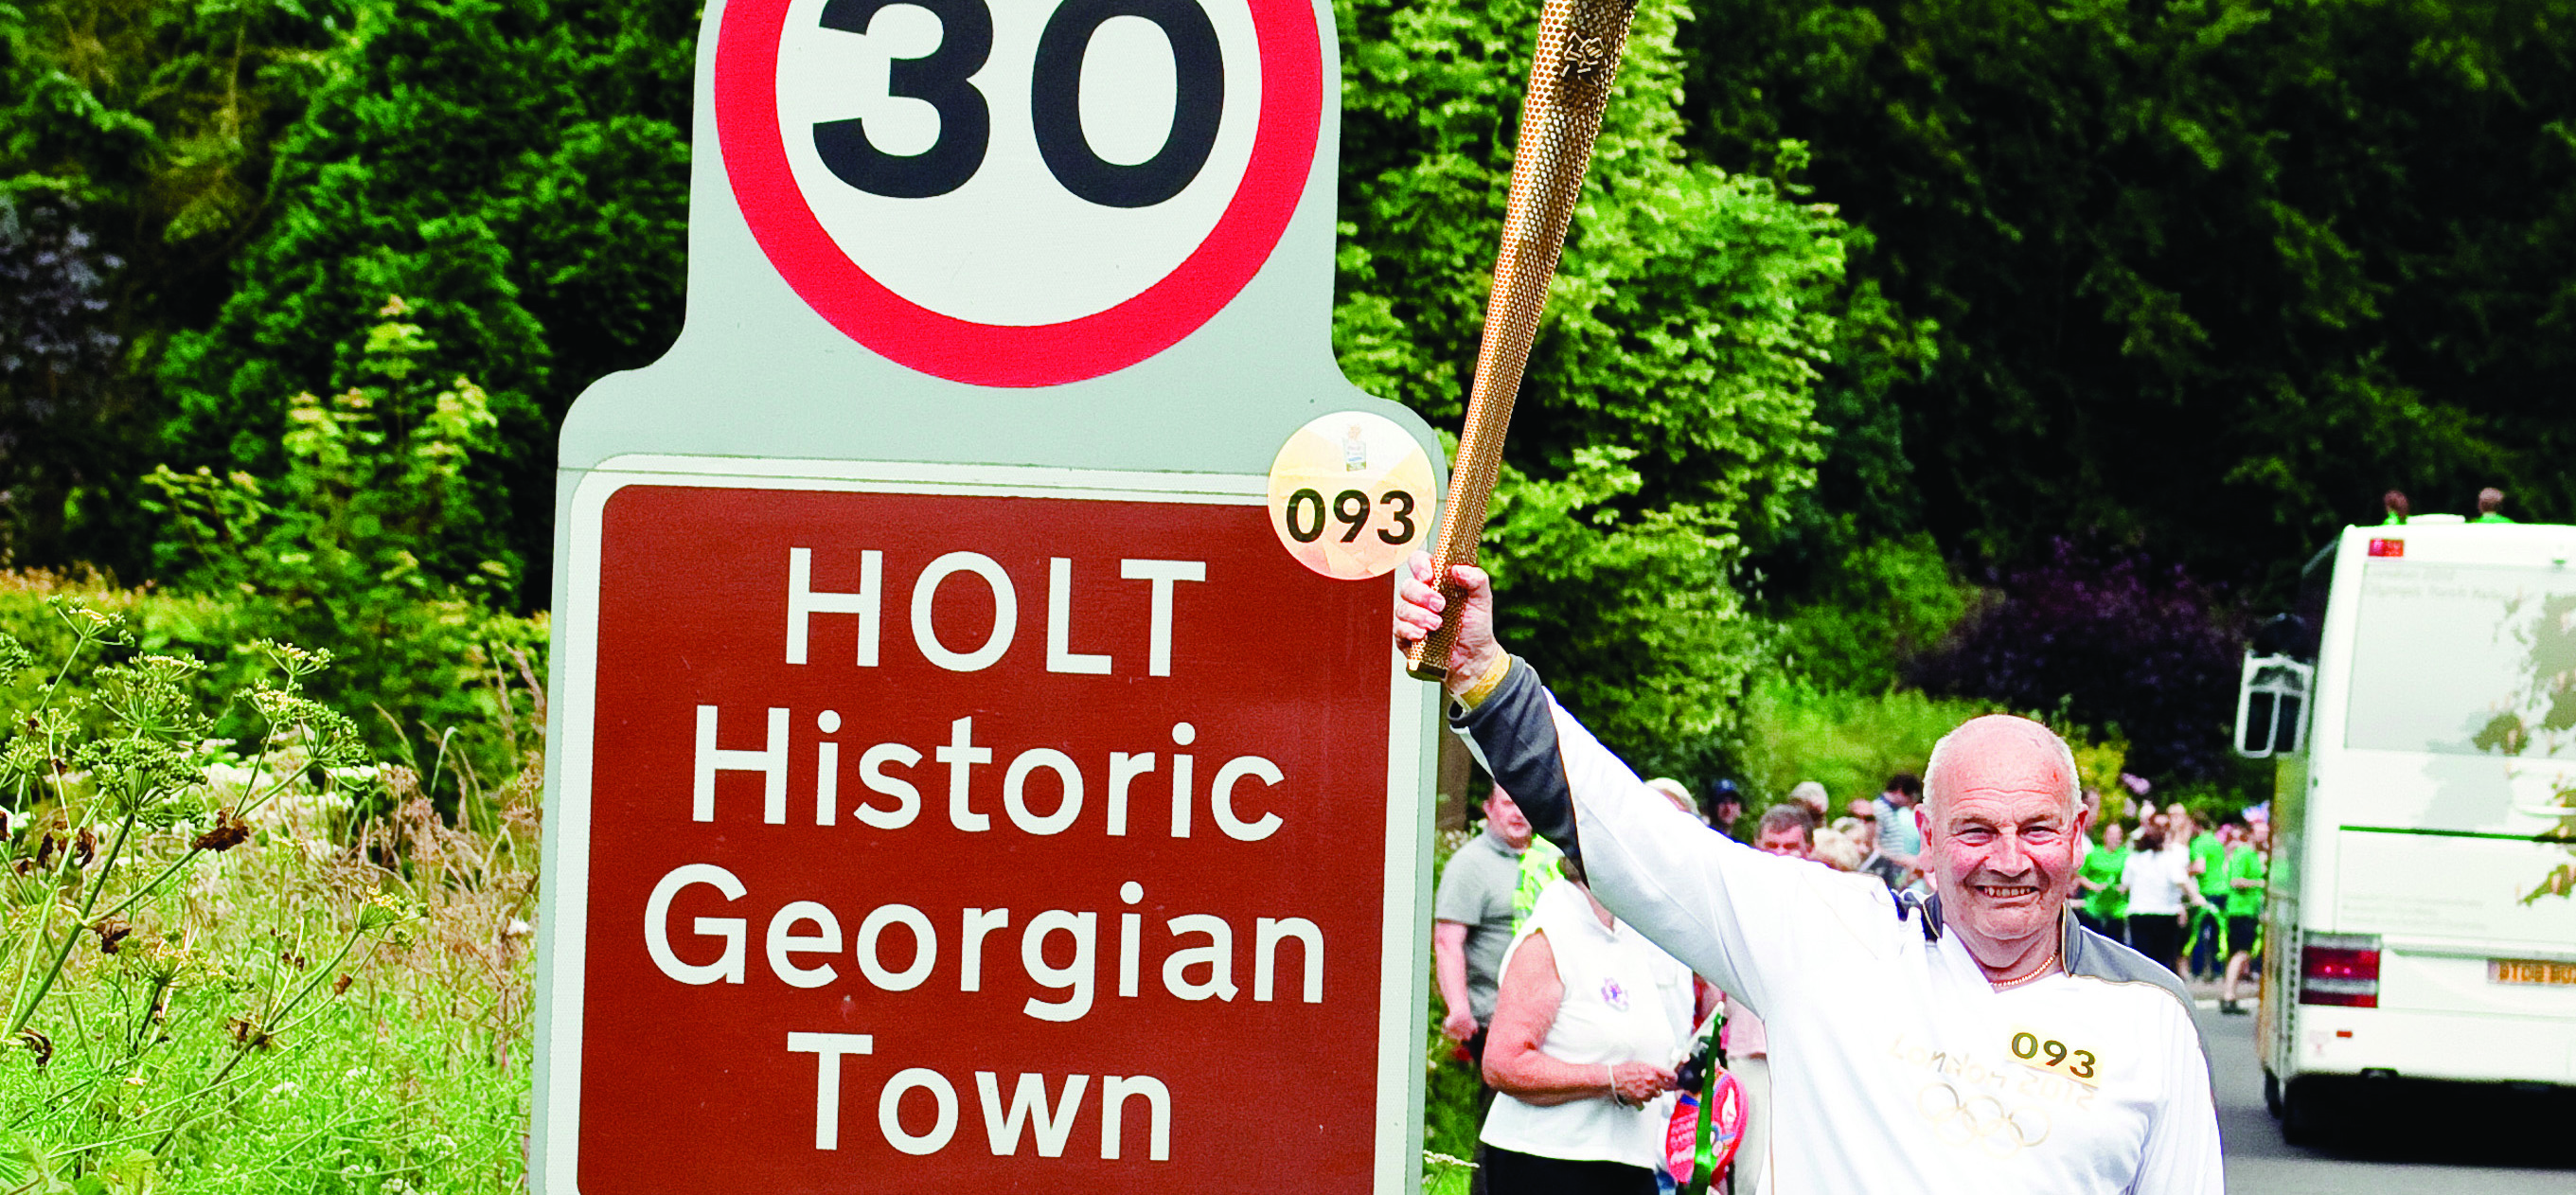 Olympic Torch comes to Holt